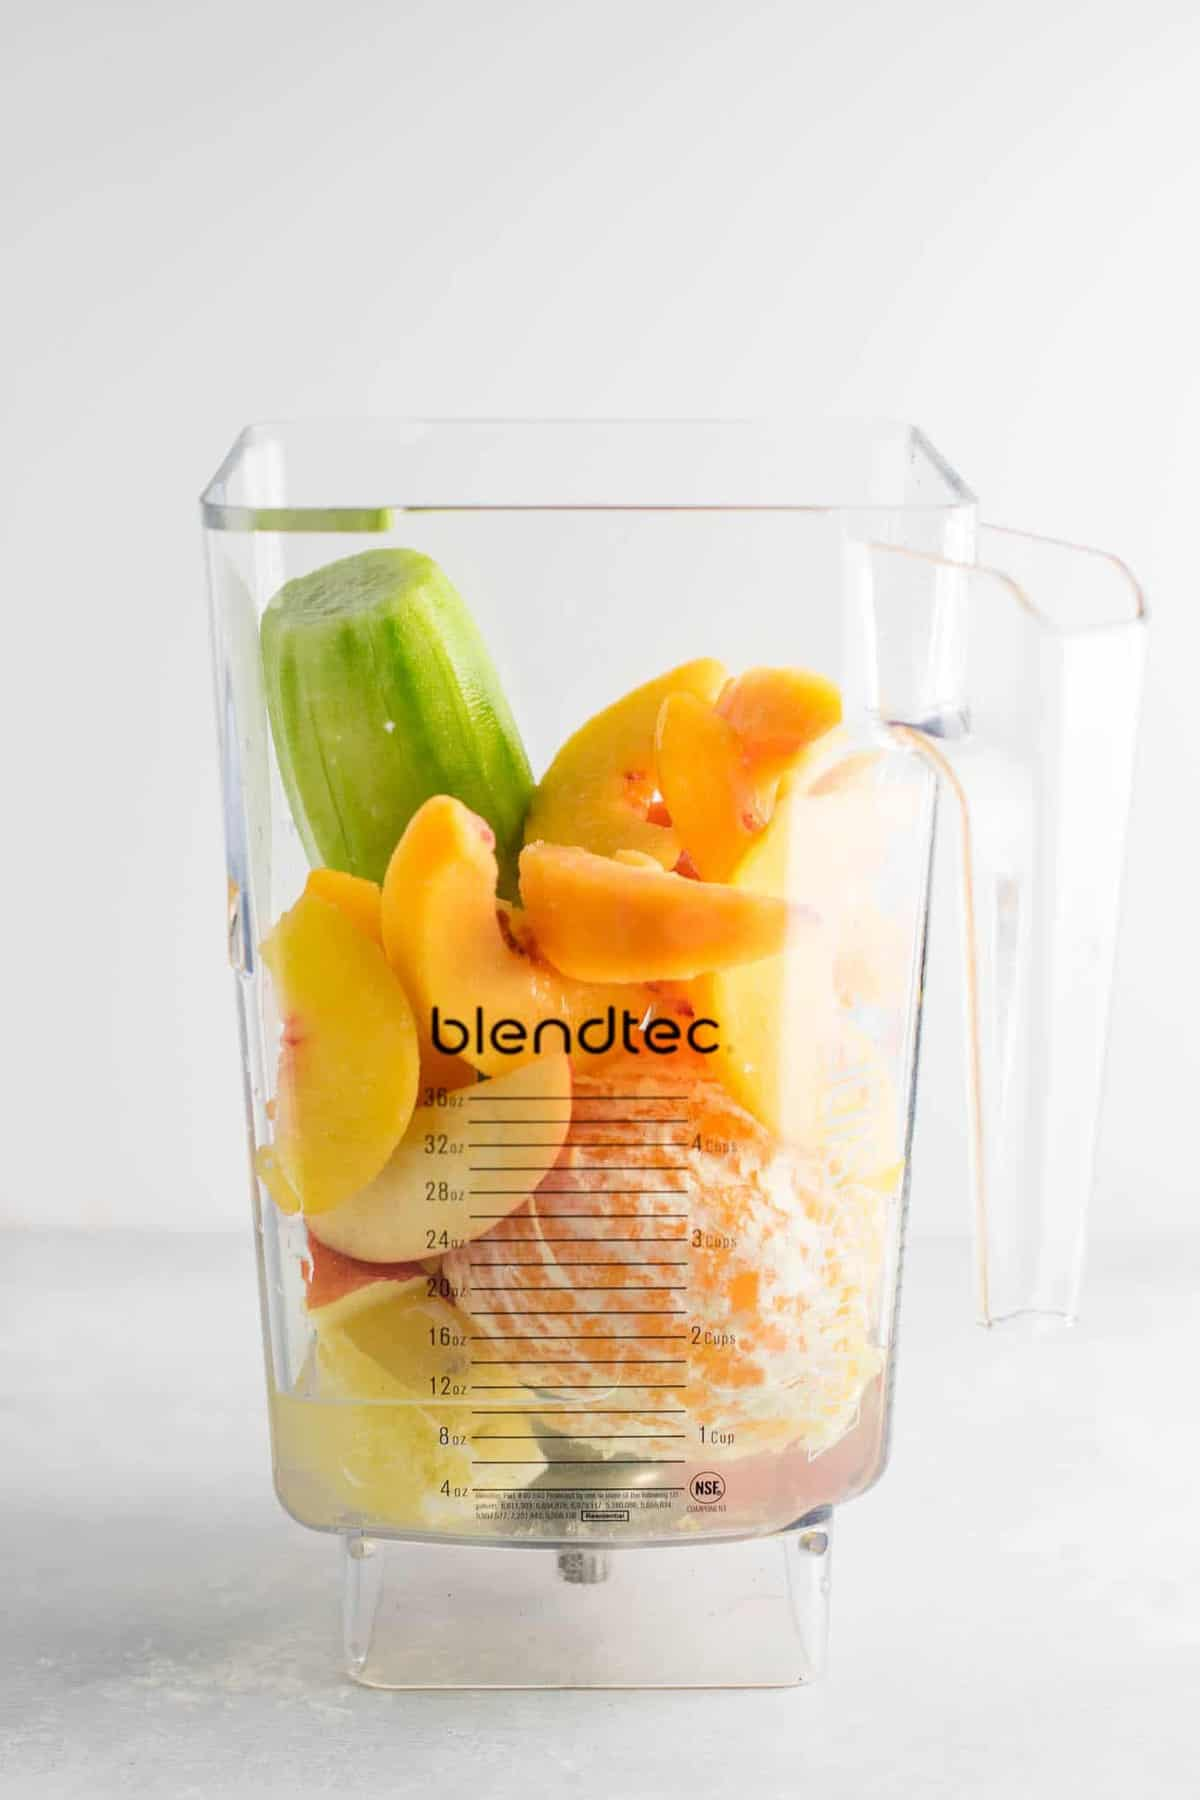 cucumber, peaches, apple, oranges, lemon, and water in a blender